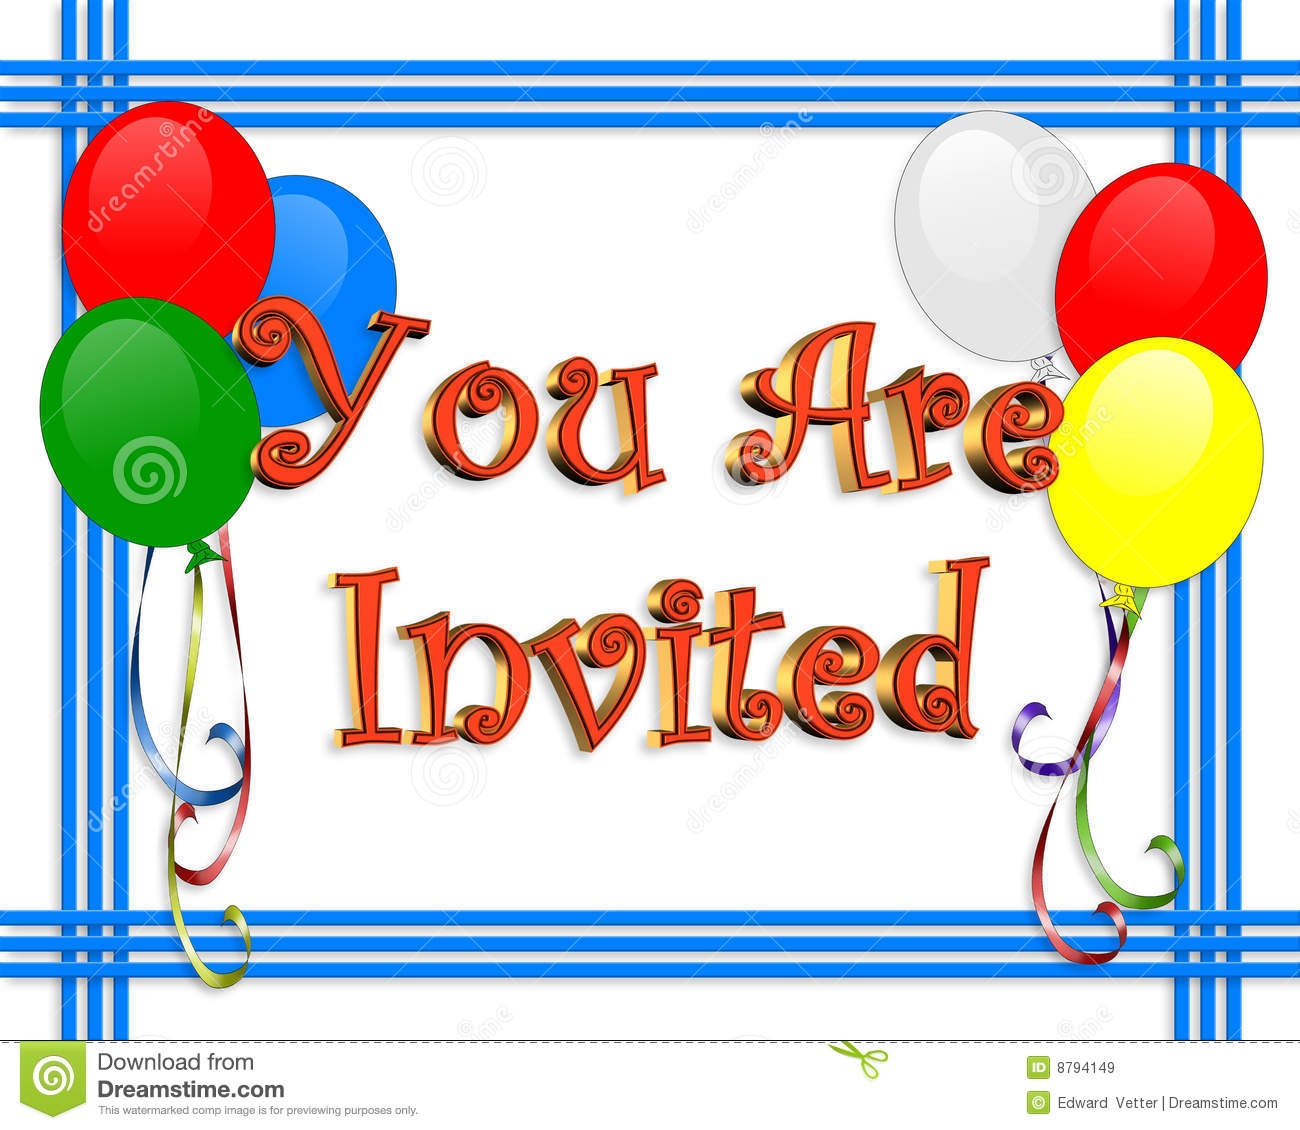 birthday invitation pictures images ; birthday-invitation-balloons-border-8794149